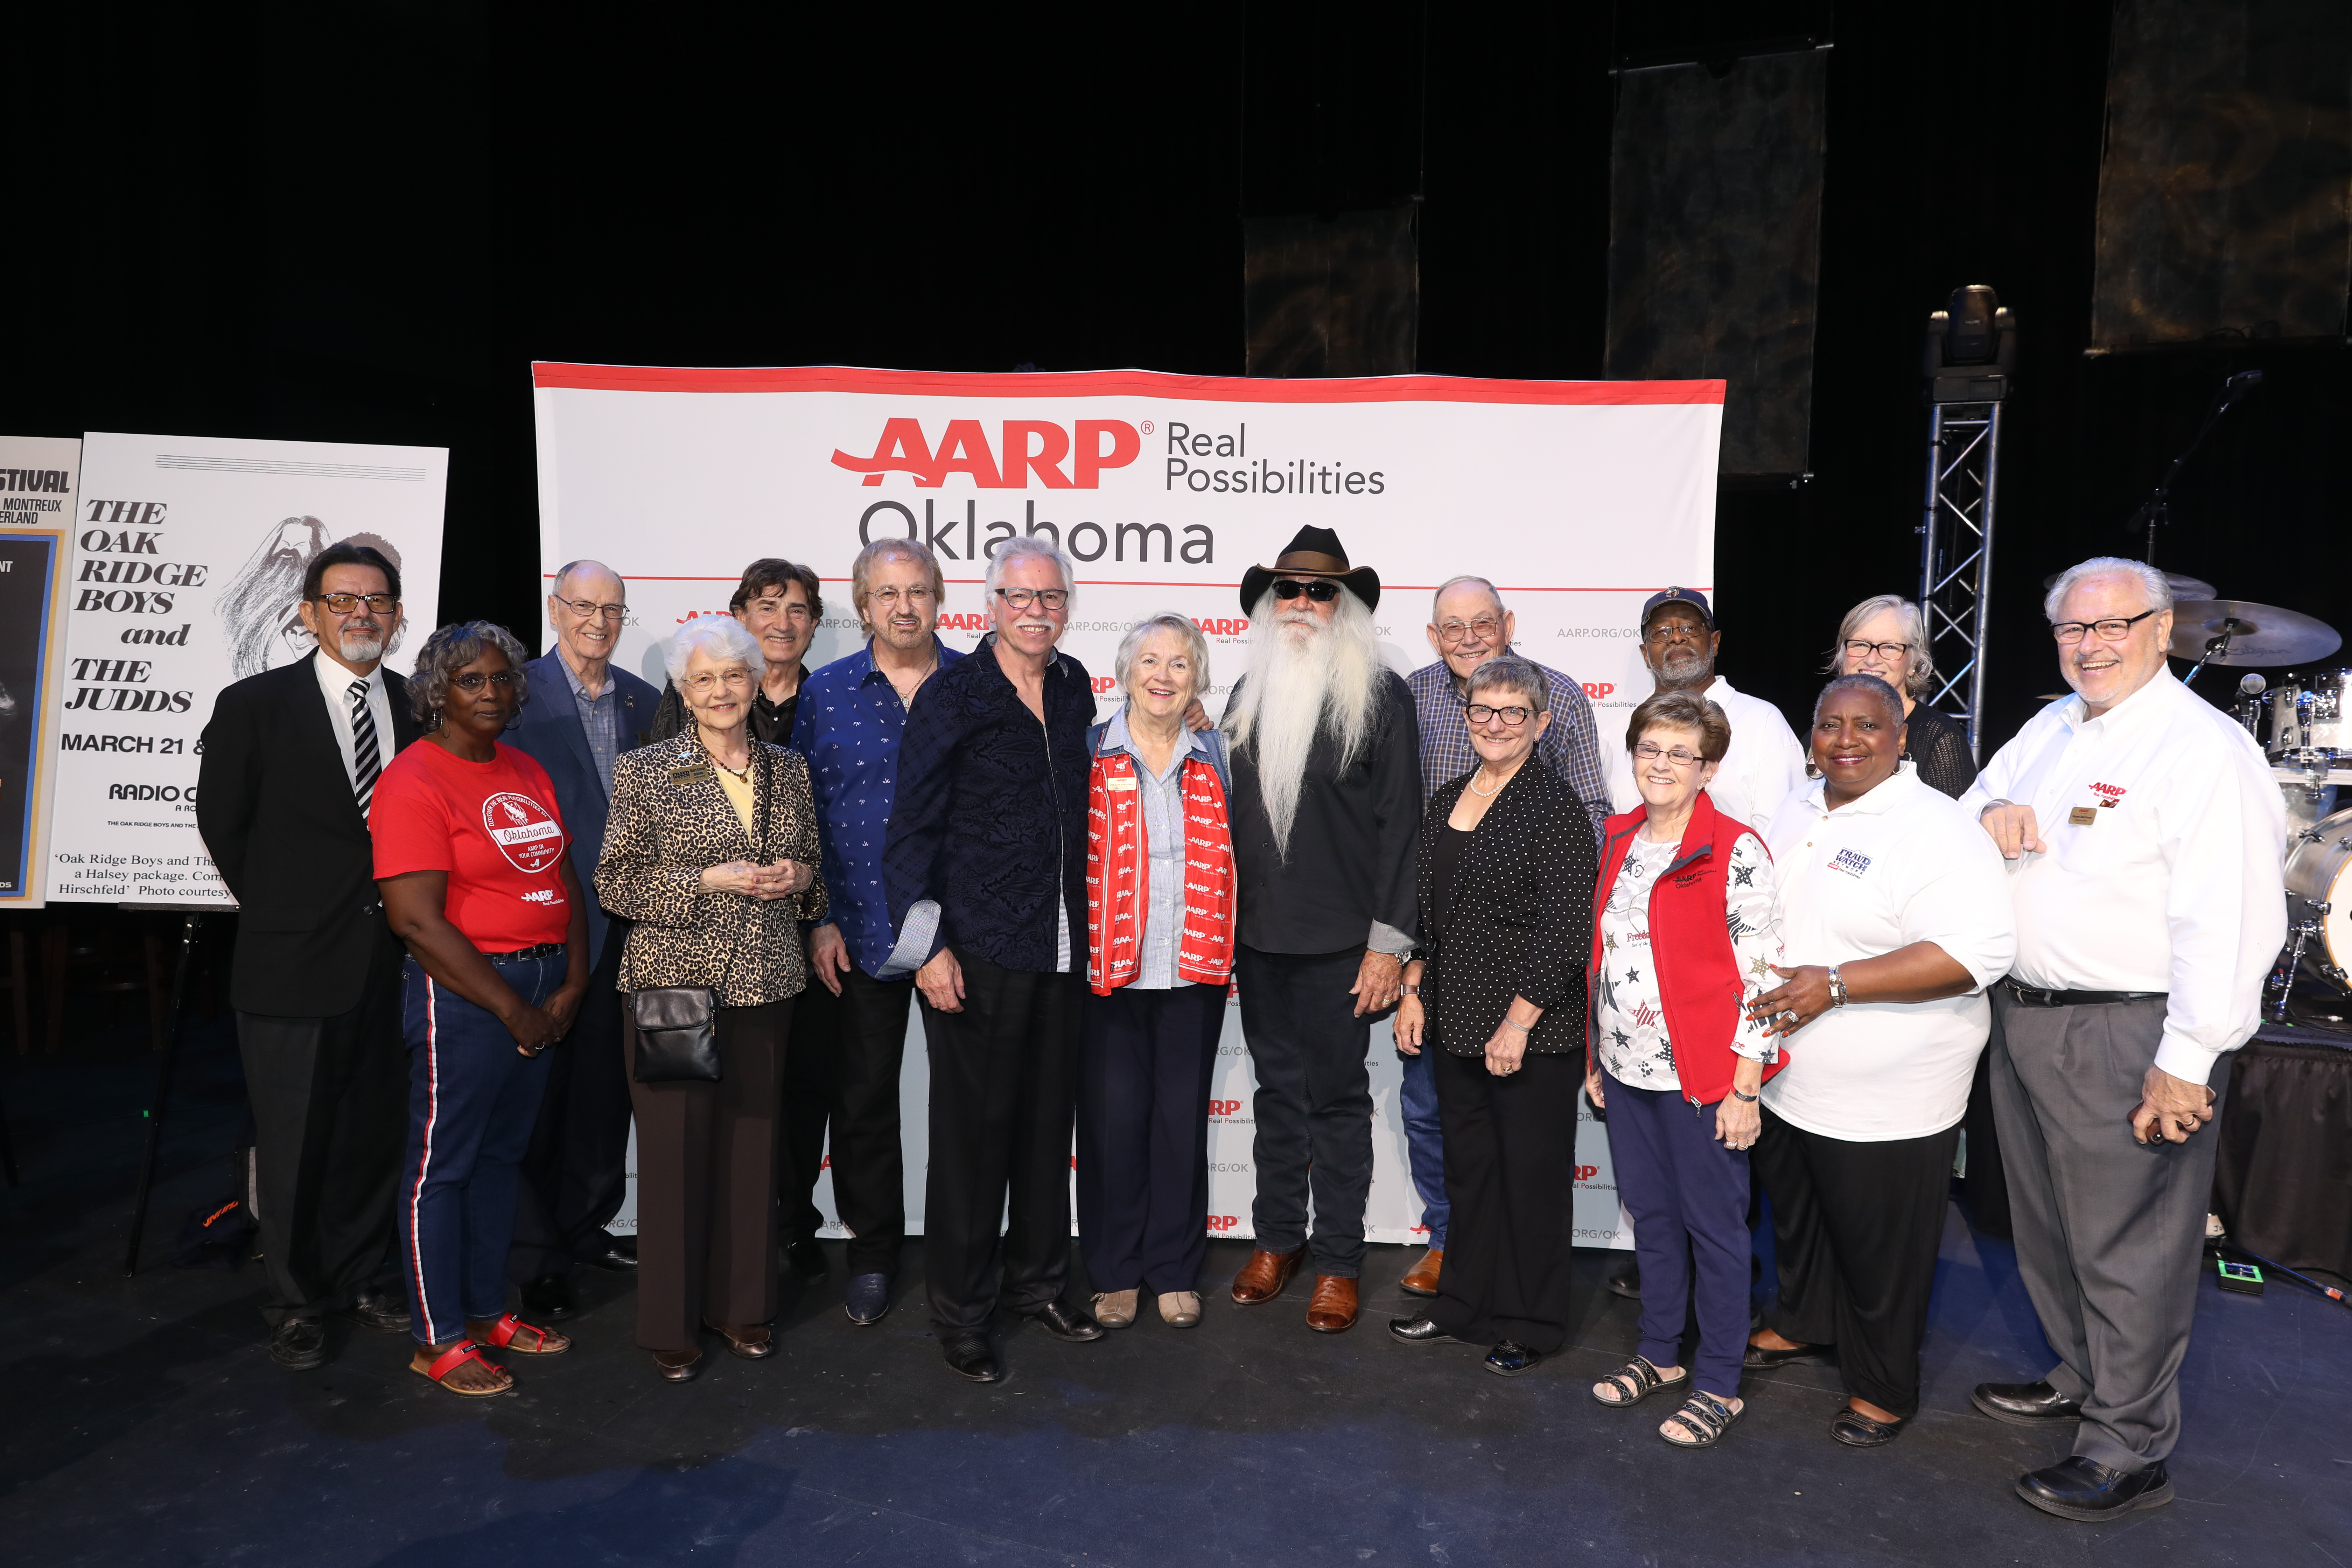 AARP Oklahoma Volunteers & The Oak Ridge Boys pose together for a photo after PSA launch